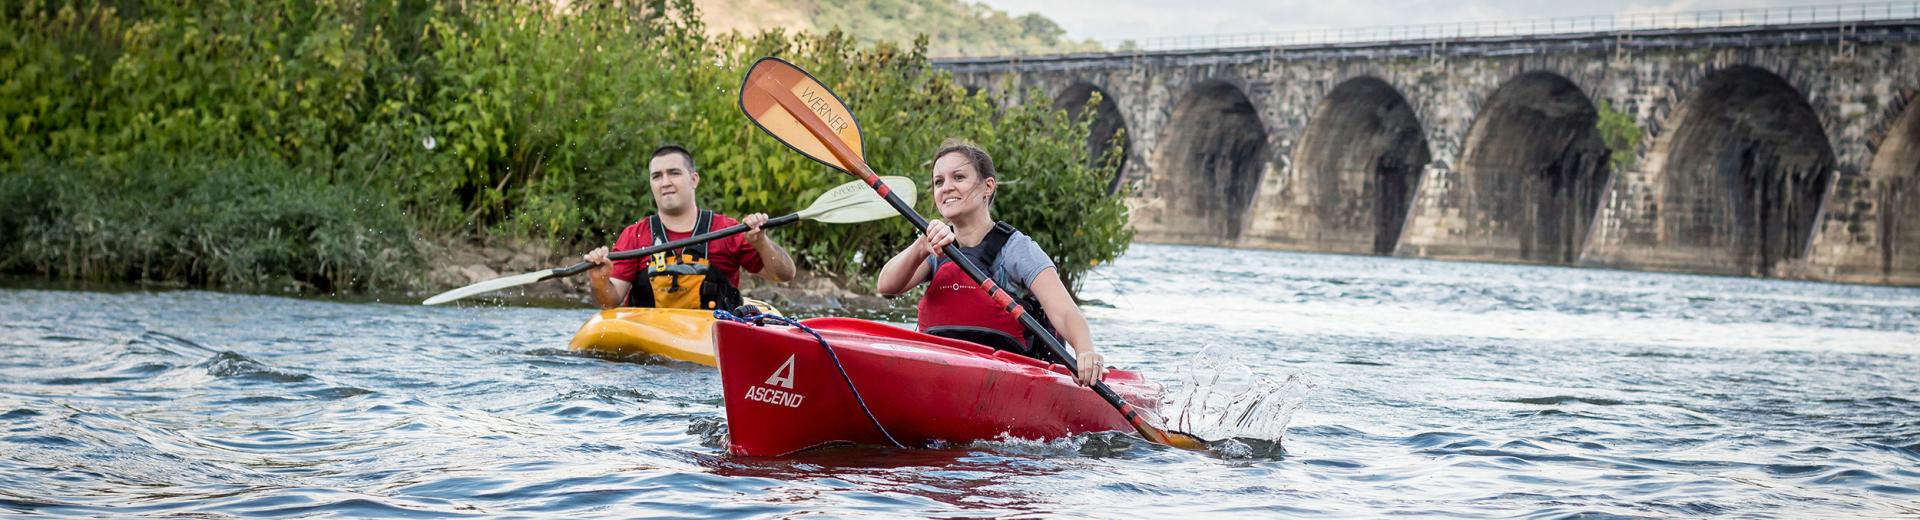 Couple kayaking in Hershey river with bridge